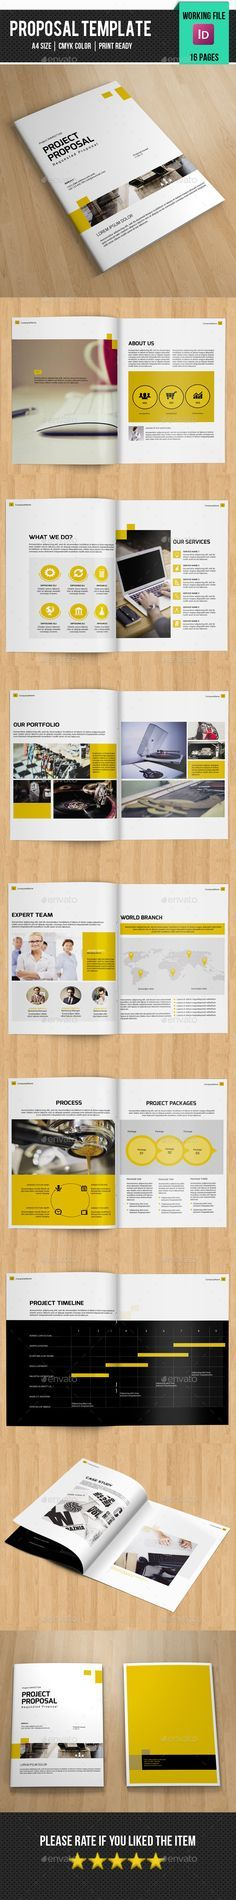 "Business Project Proposal Template <a class=""pintag"" href=""/explore/design/"" title=""#design explore Pinterest"">#design</a> Download: <a href=""http://graphicriver.net/item/business-project-proposal-templatev280/12176091?ref=ksioks"" rel=""nofollow"" target=""_blank"">graphicriver.net/...</a>"